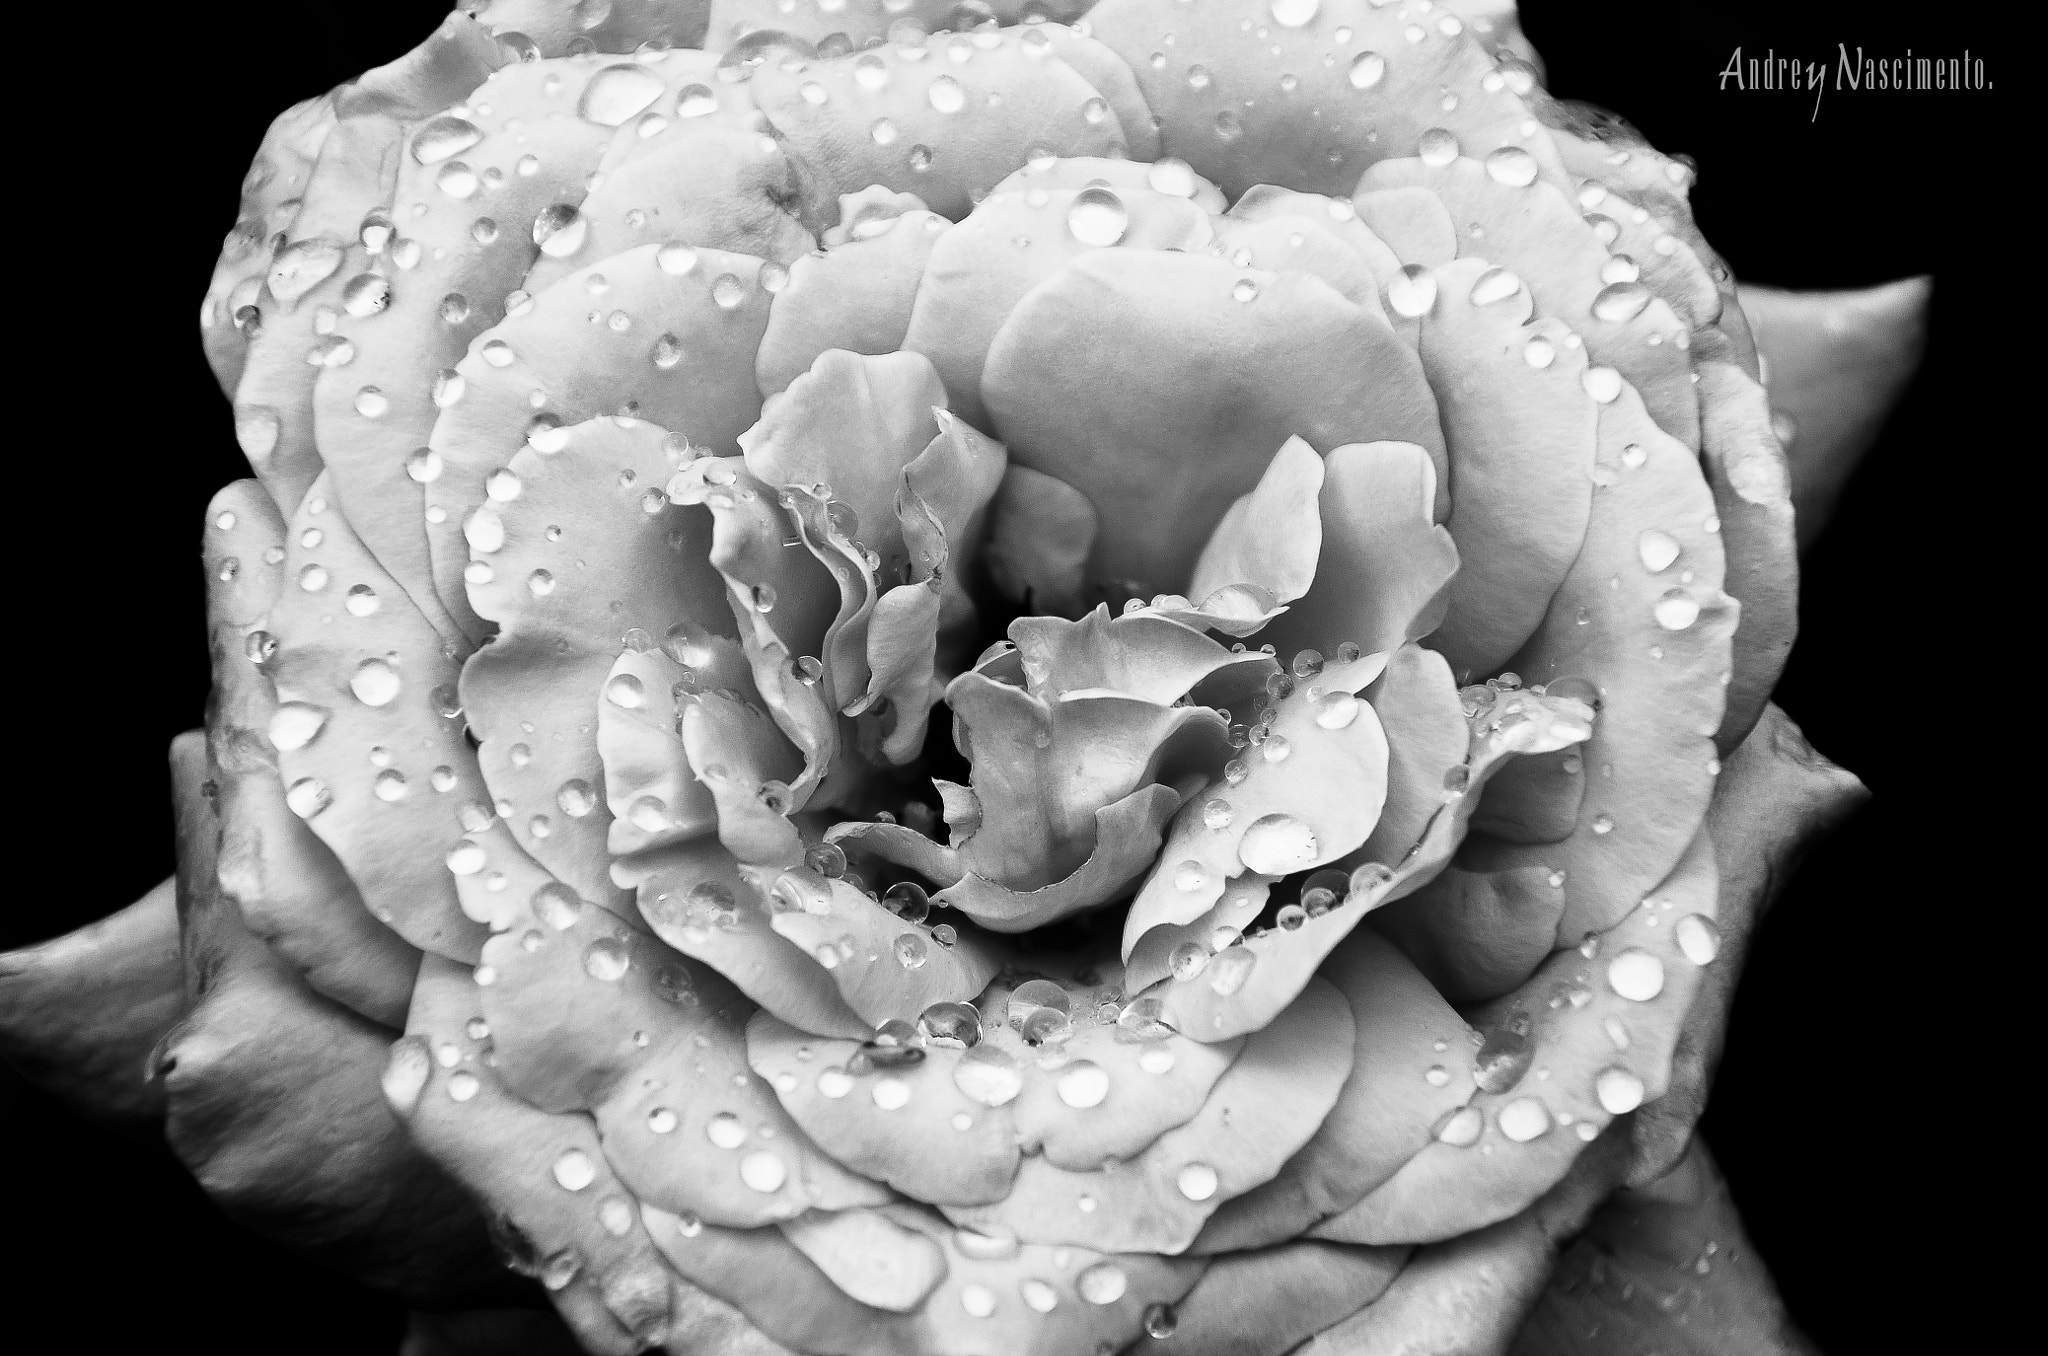 Photograph B&W Rose - Water Drops by Andrey Nascimento on 500px